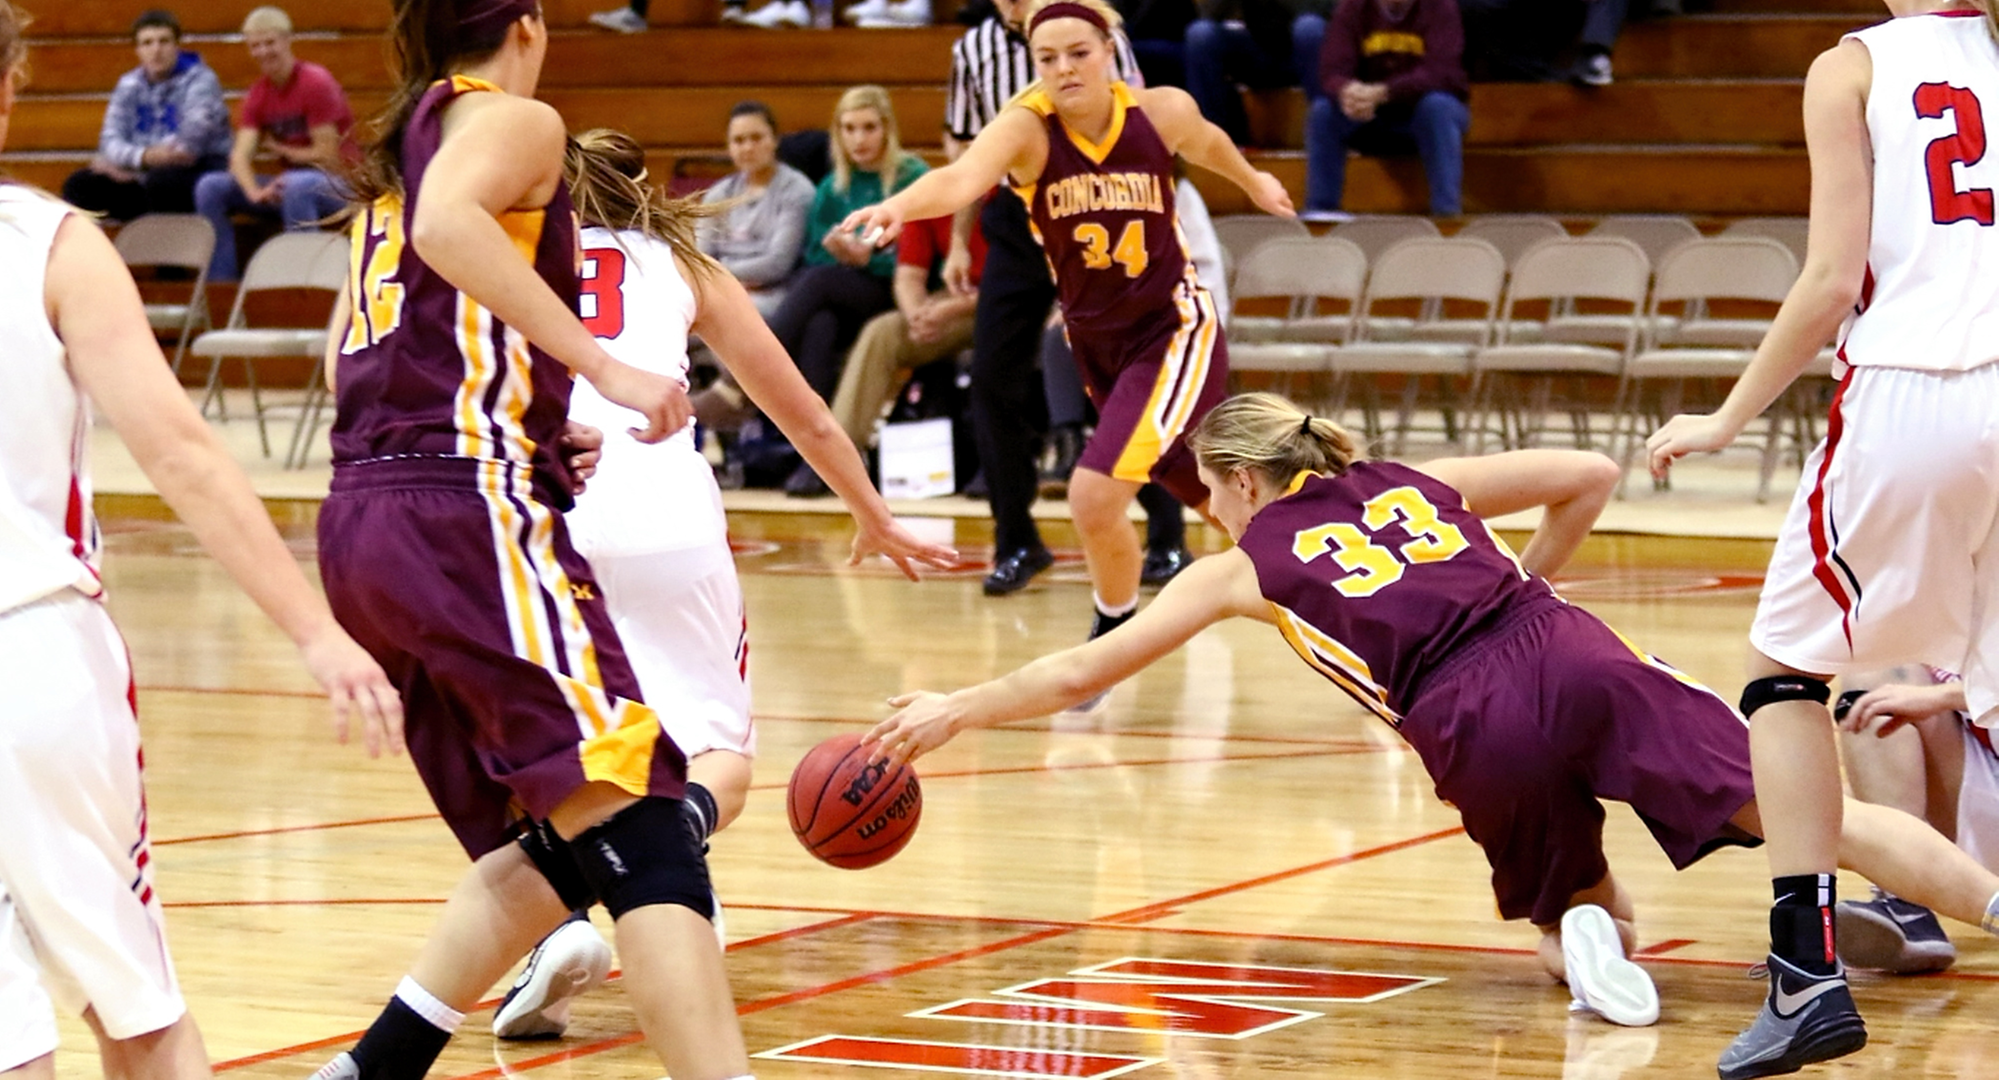 Senior Jenna Januschka dives on the floor after a loose ball in the Cobbers' game at St. Mary's. Januschka had a season-high 18 points for CC. (Photo courtesy of Ryan Coleman, D3photography.com)